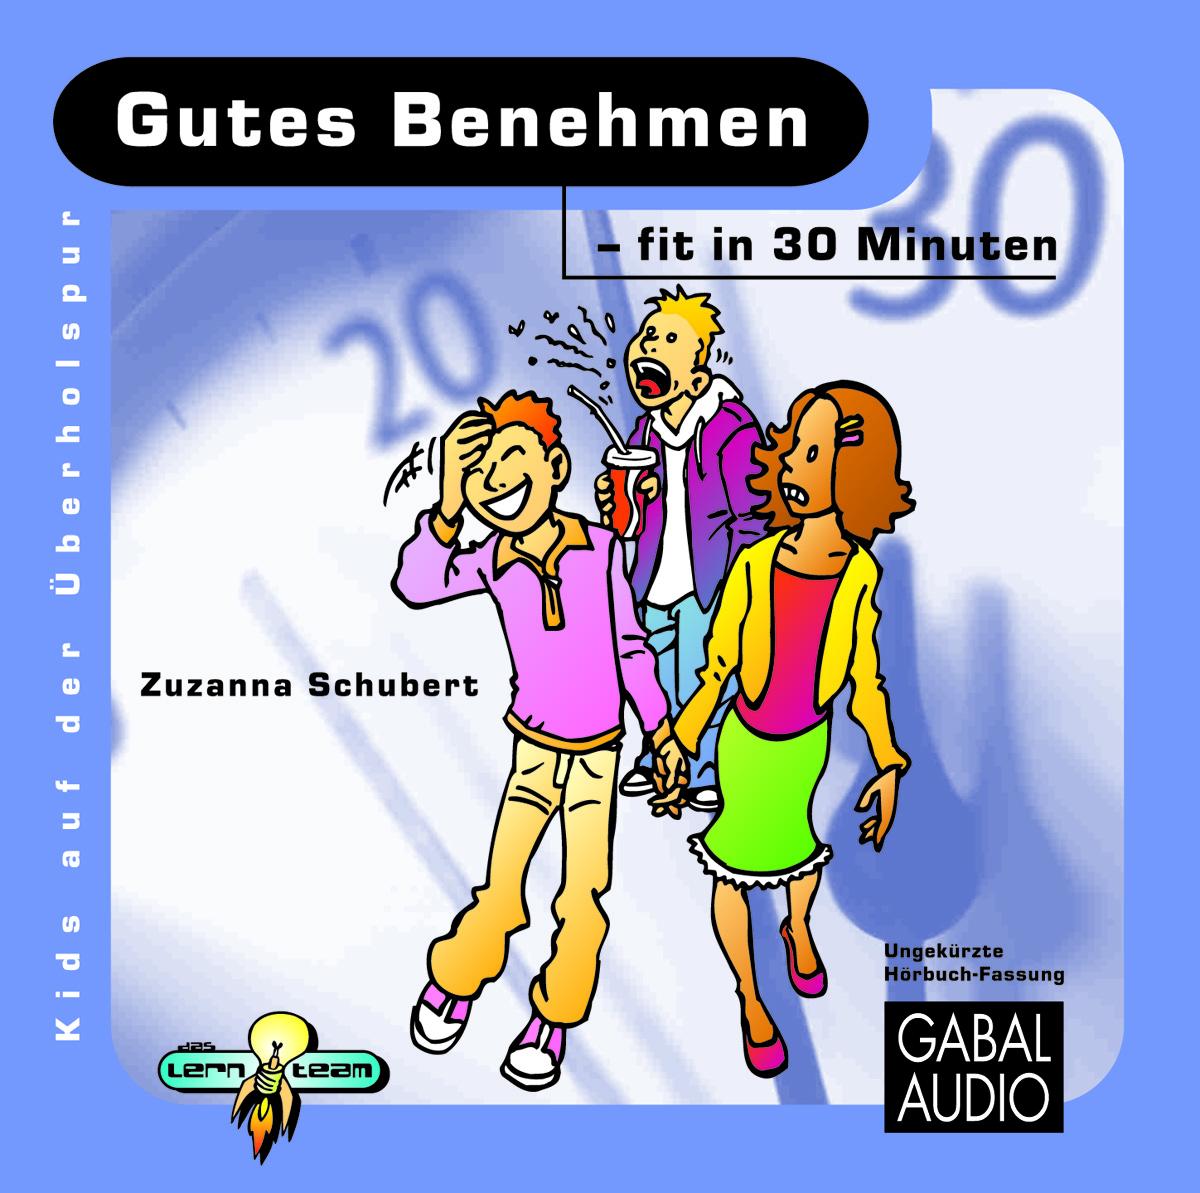 gutes benehmen fit in 30 minuten zuzanna schubert audio cd gabal verlag. Black Bedroom Furniture Sets. Home Design Ideas